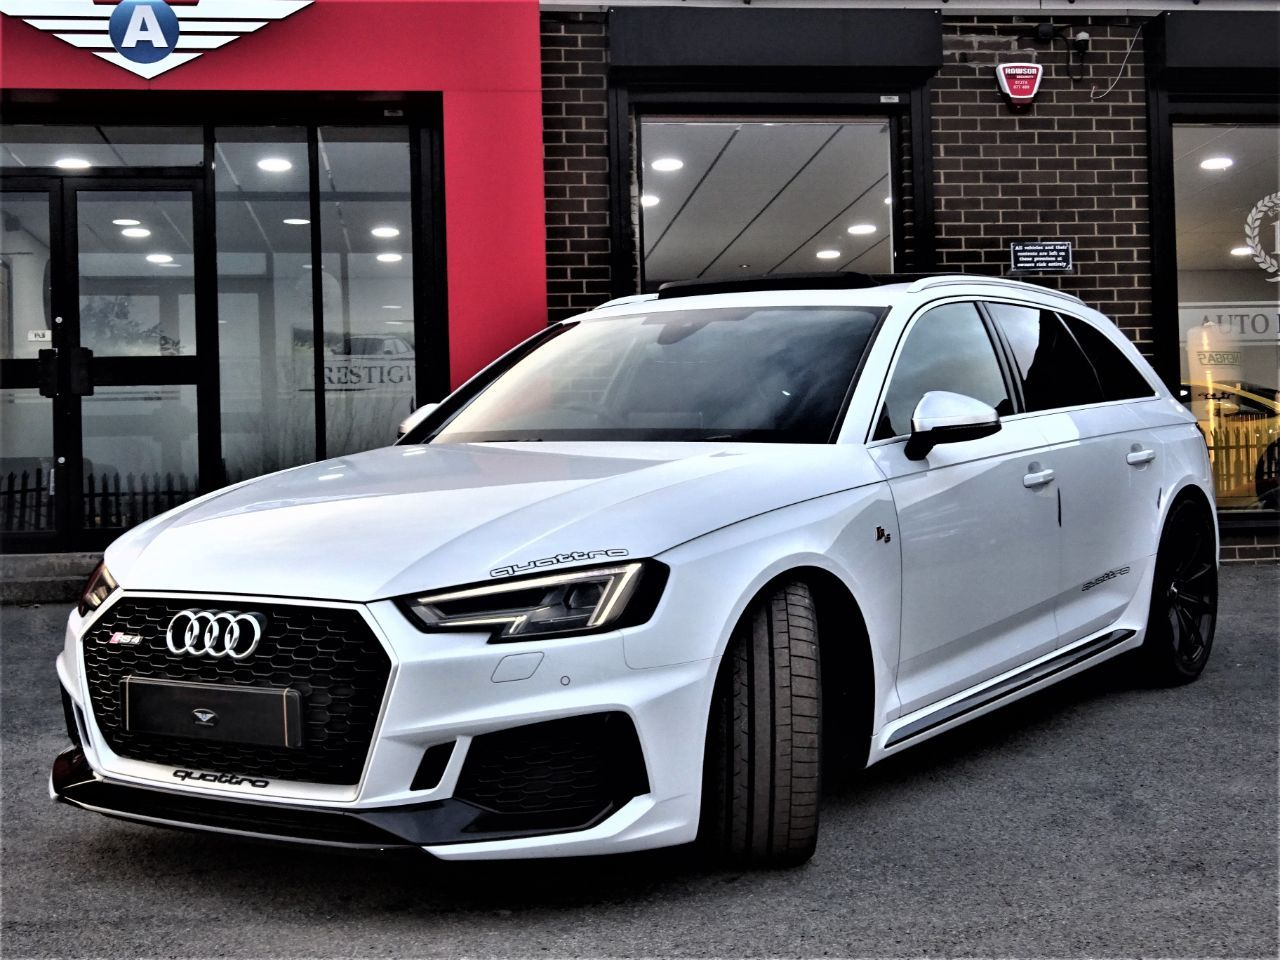 Audi RS4 Avant 2.9 QUATTRO MASSIVE SPEC PEARL WHITE PAN ROOF VATQ Four Wheel Drive Petrol Pearl White at Autoprestige Bradford